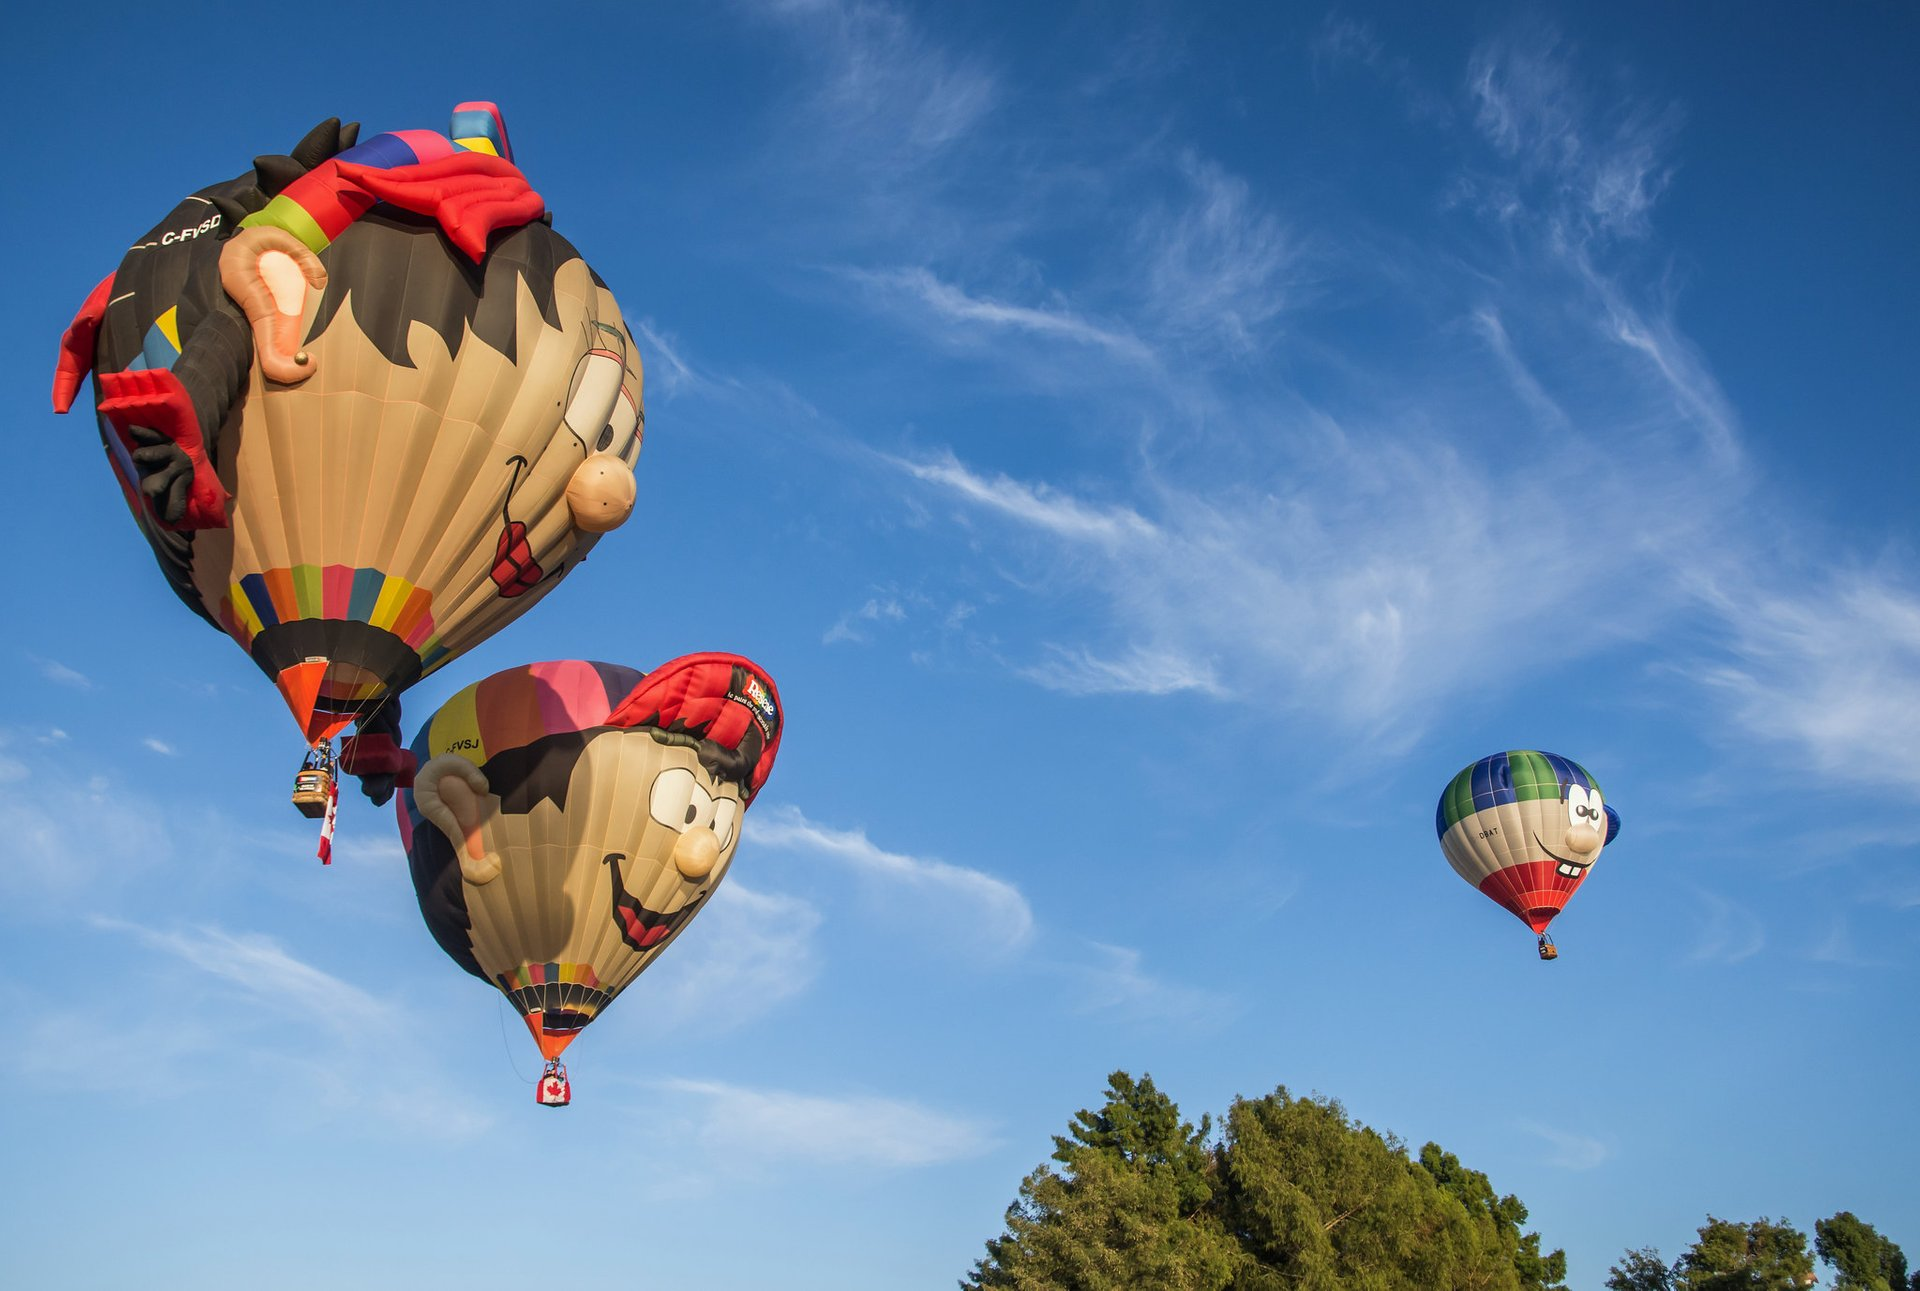 Balloons over Waikato in New Zealand 2020 - Best Time